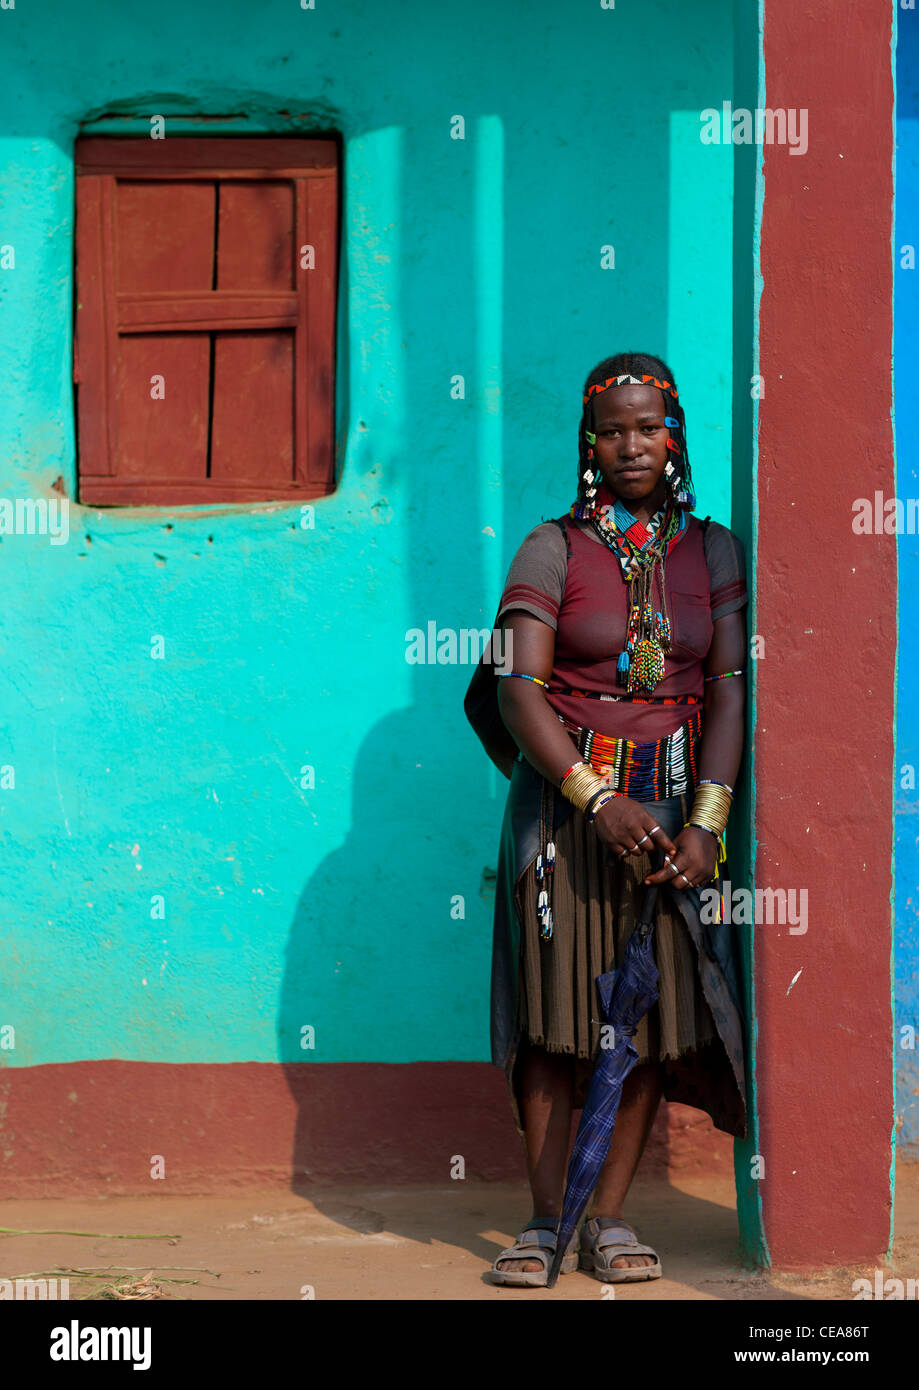 Traditional Clothing Ara Woman Posing Outside Of Blue House In Jinka Omo Valley Ethiopia - Stock Image